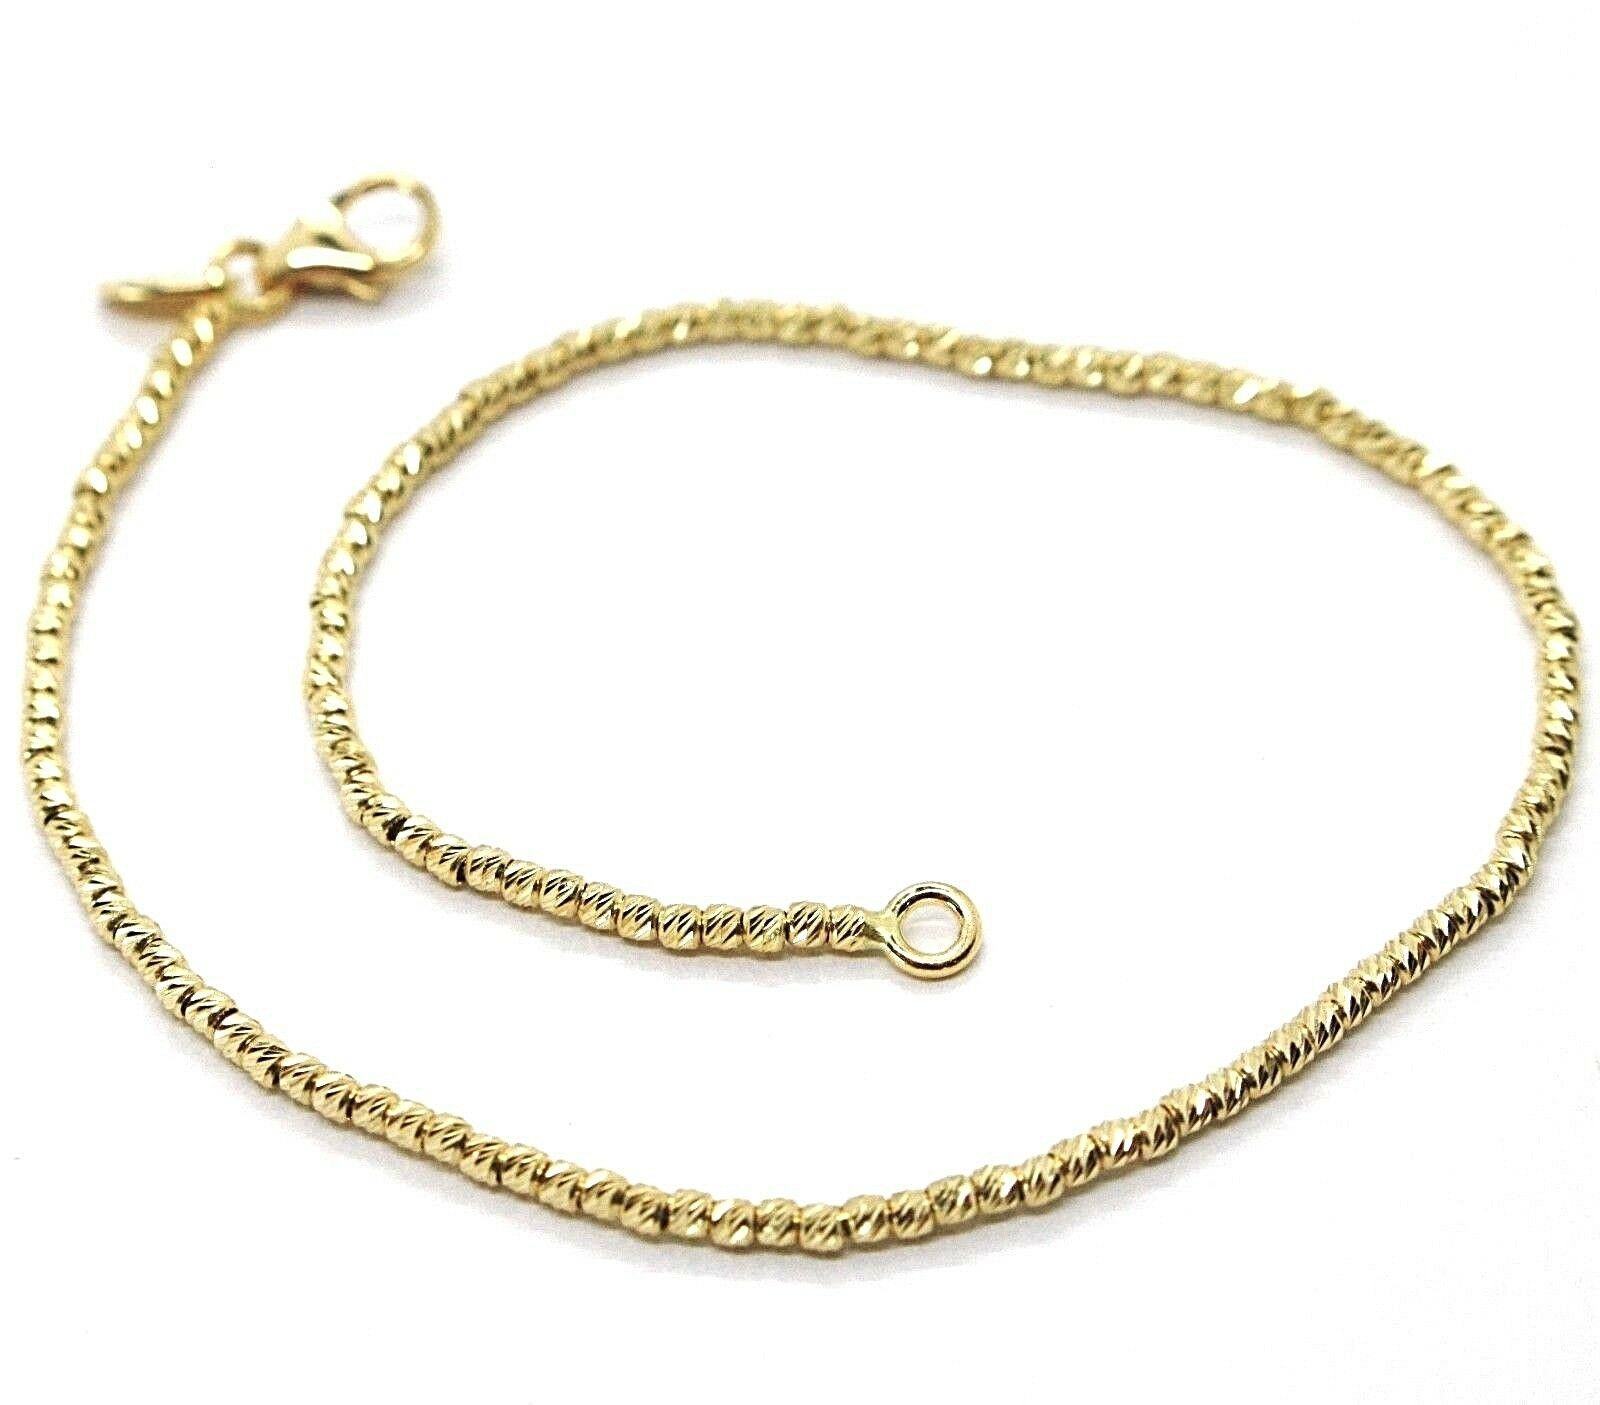 18K YELLOW GOLD BRACELET WITH FINELY WORKED SPHERES, 1.5 MM DIAMOND CUT BALLS